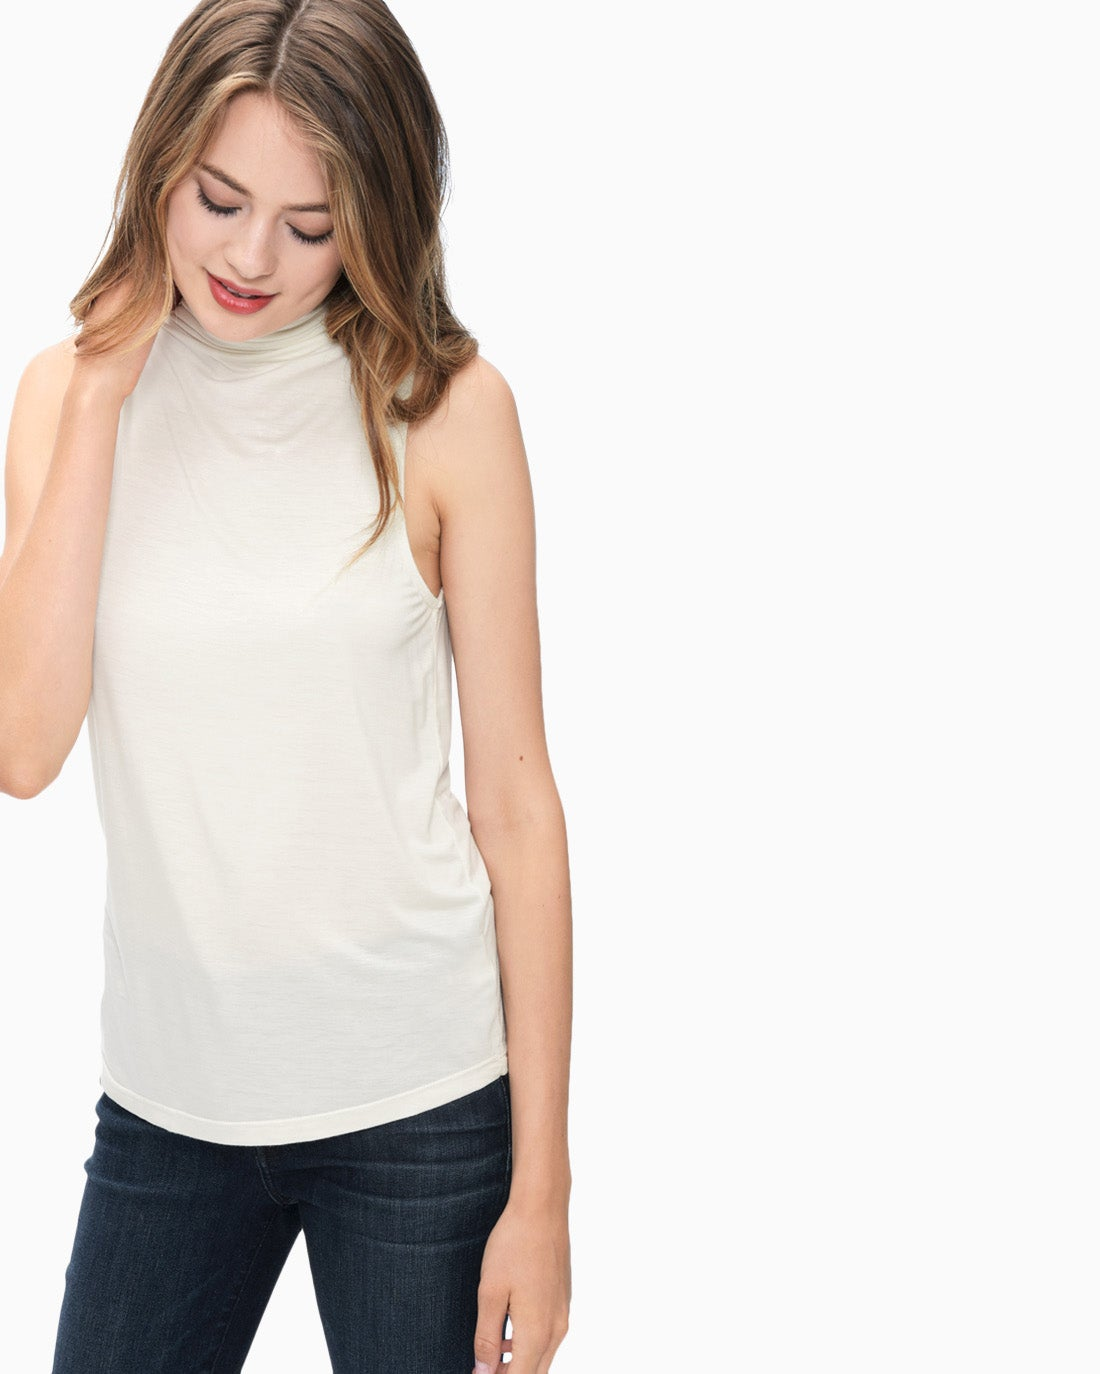 Splendid Women's Rayon Jersey Mock Neck Tank